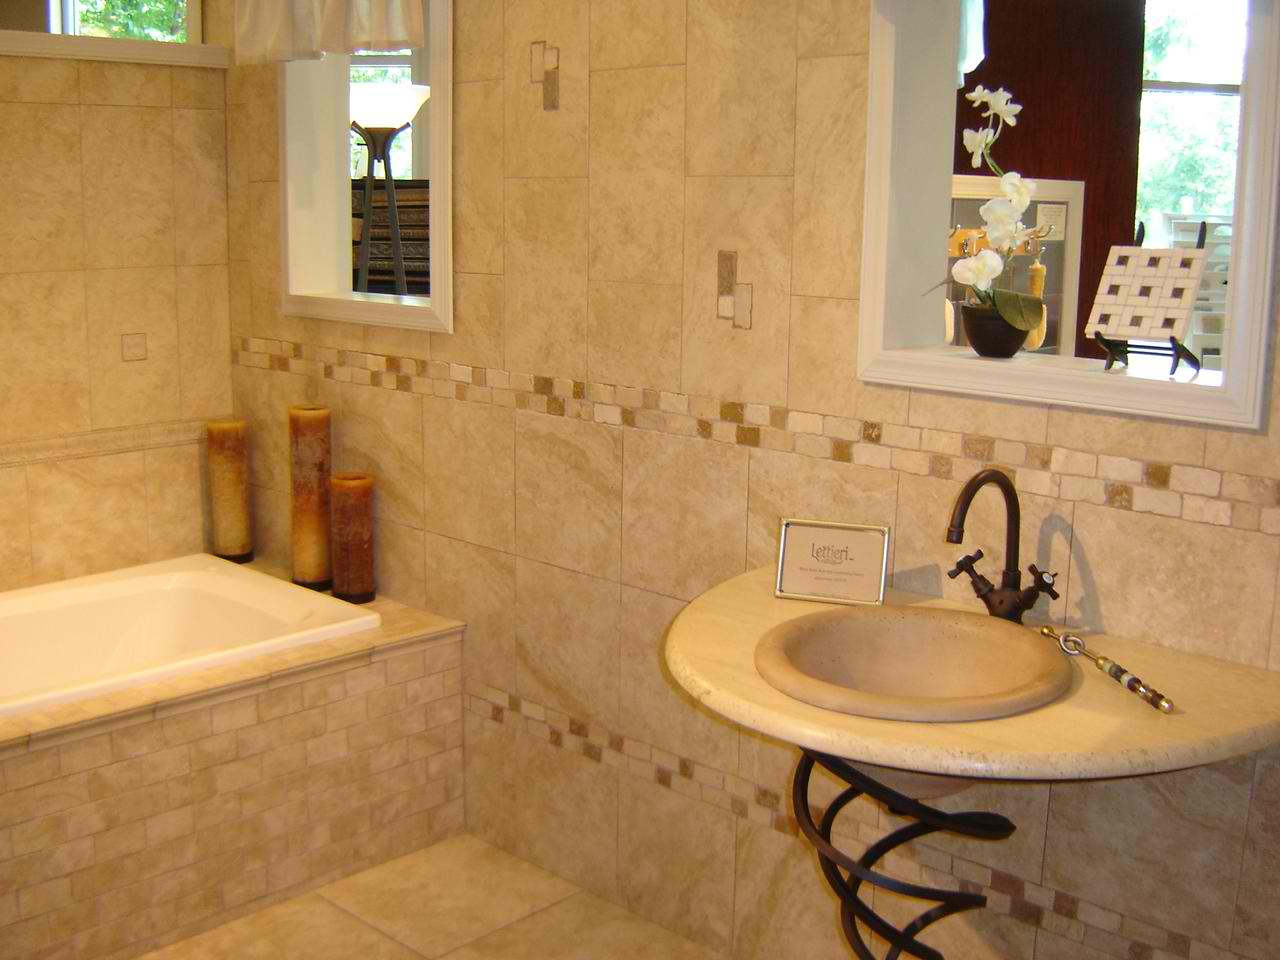 modern bathroom tiles 2014 tips on how to refinish bathroom tiles interior 19591